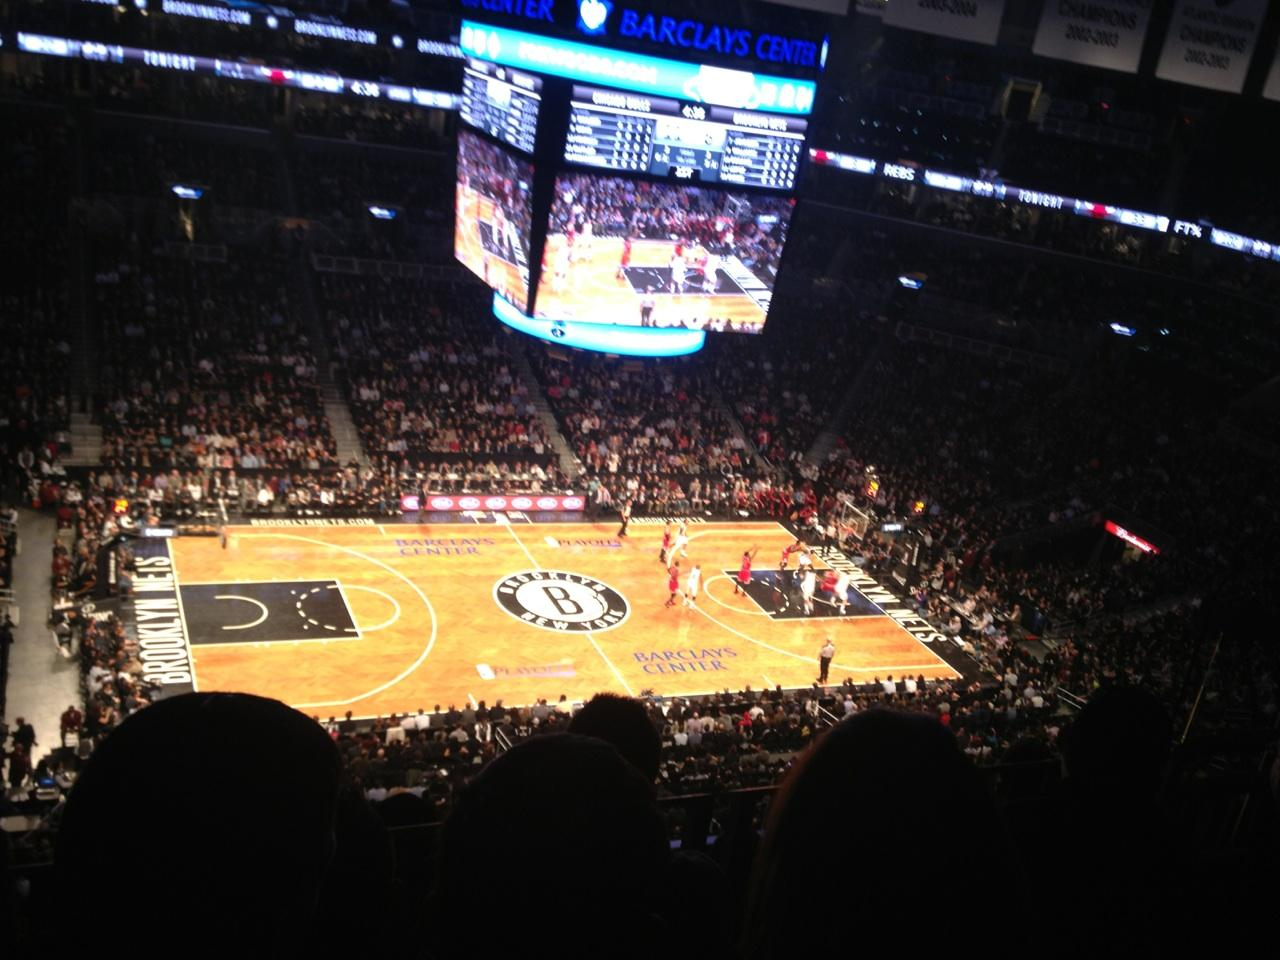 Barclays Center Section 226 Row 5 Seat 5